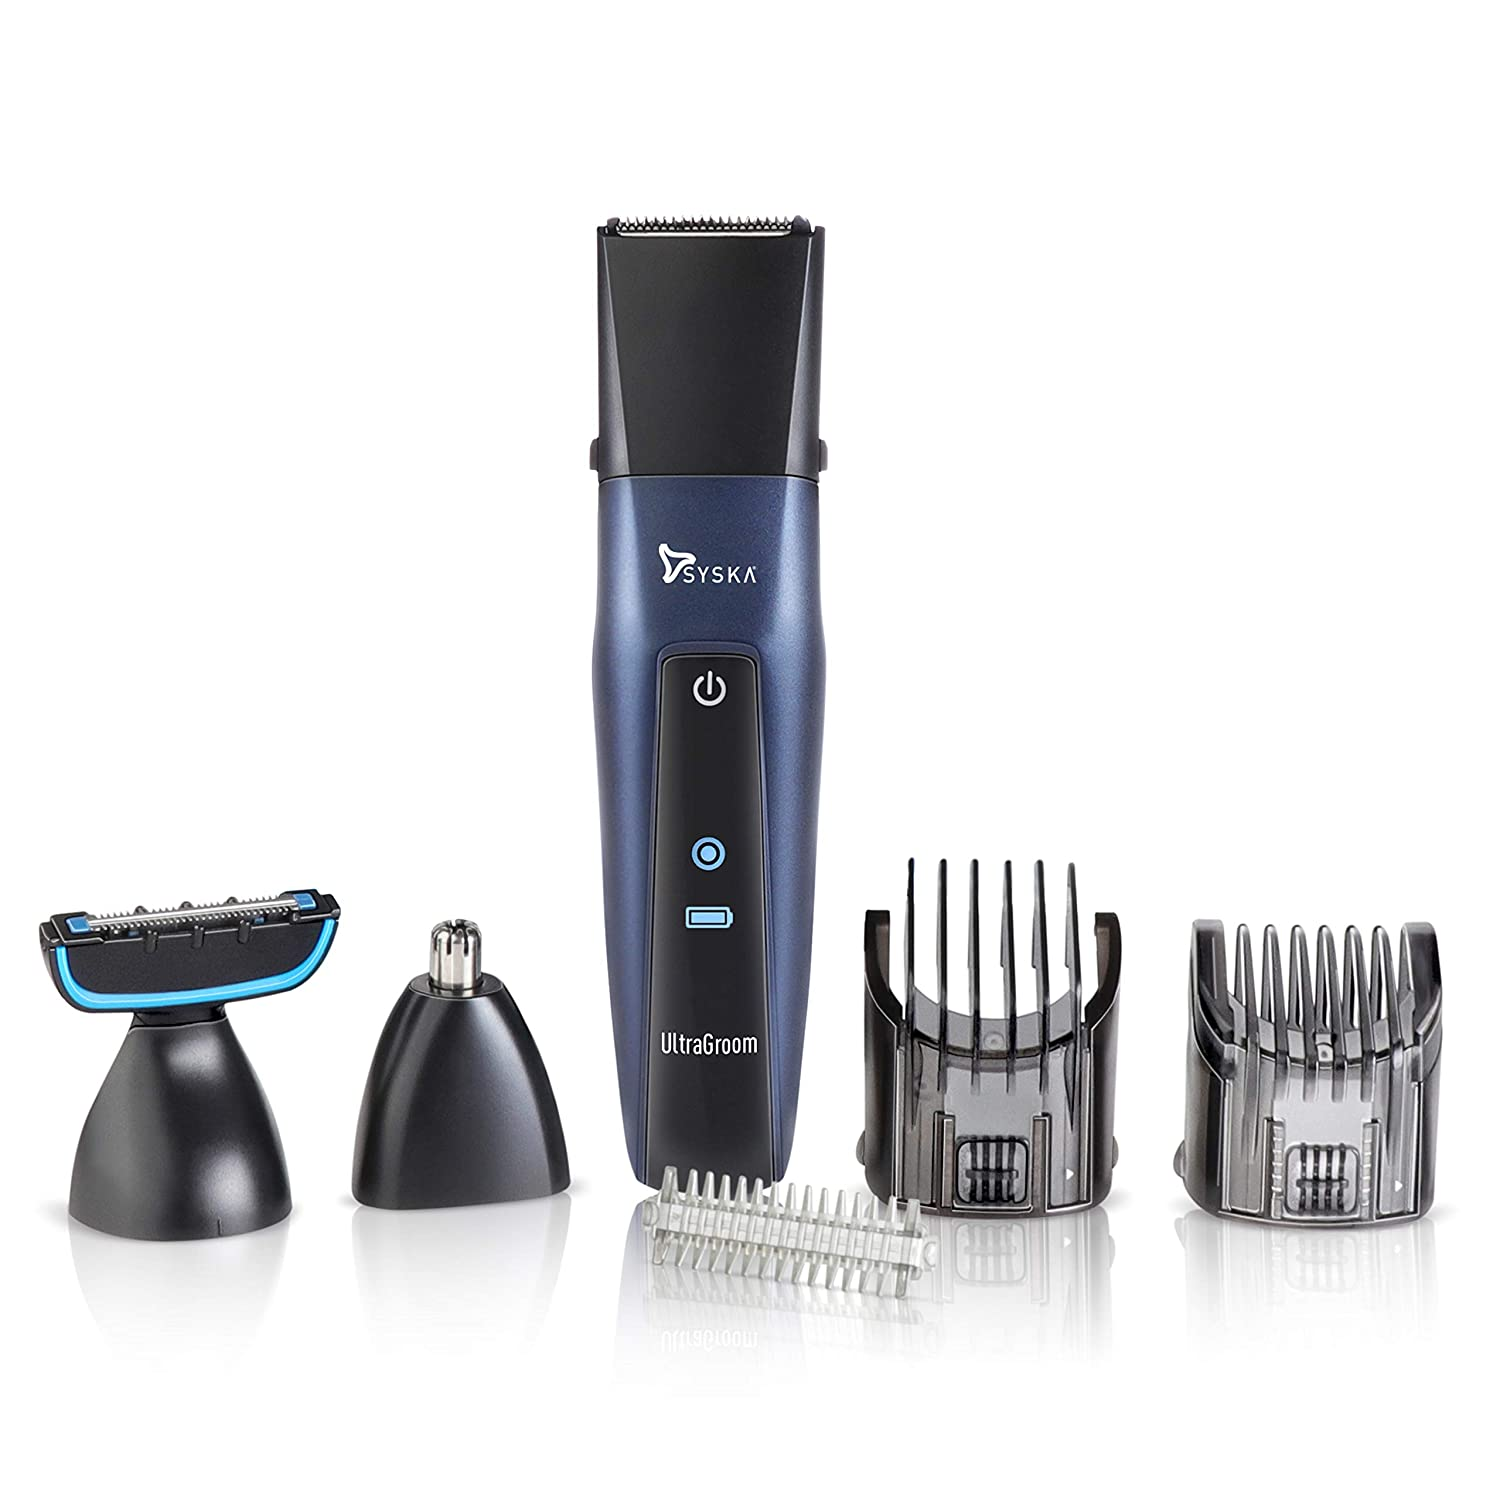 SYSKA HT3030K Ultragroom Pro Styling 5in1 Kit with 50Min Runtime (Blue)